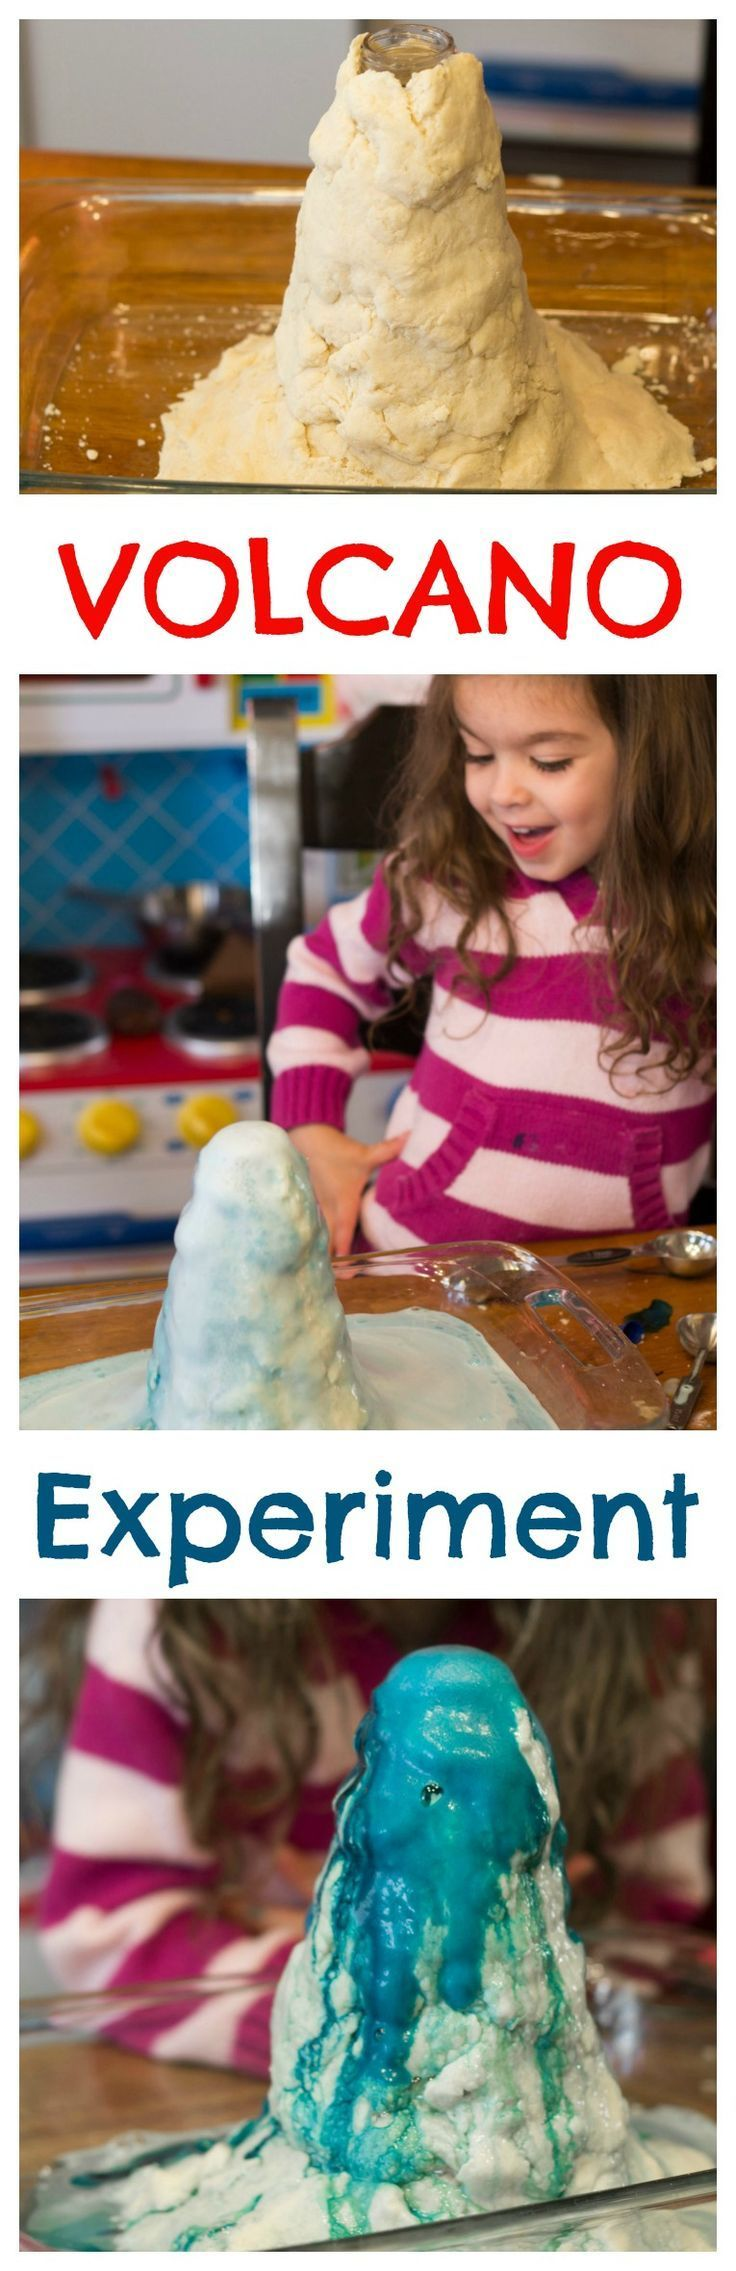 Easy science experiment for kids! Volcano Science Project that uses stuff you already have in your kitchen! Would make a great science fair experiment idea.